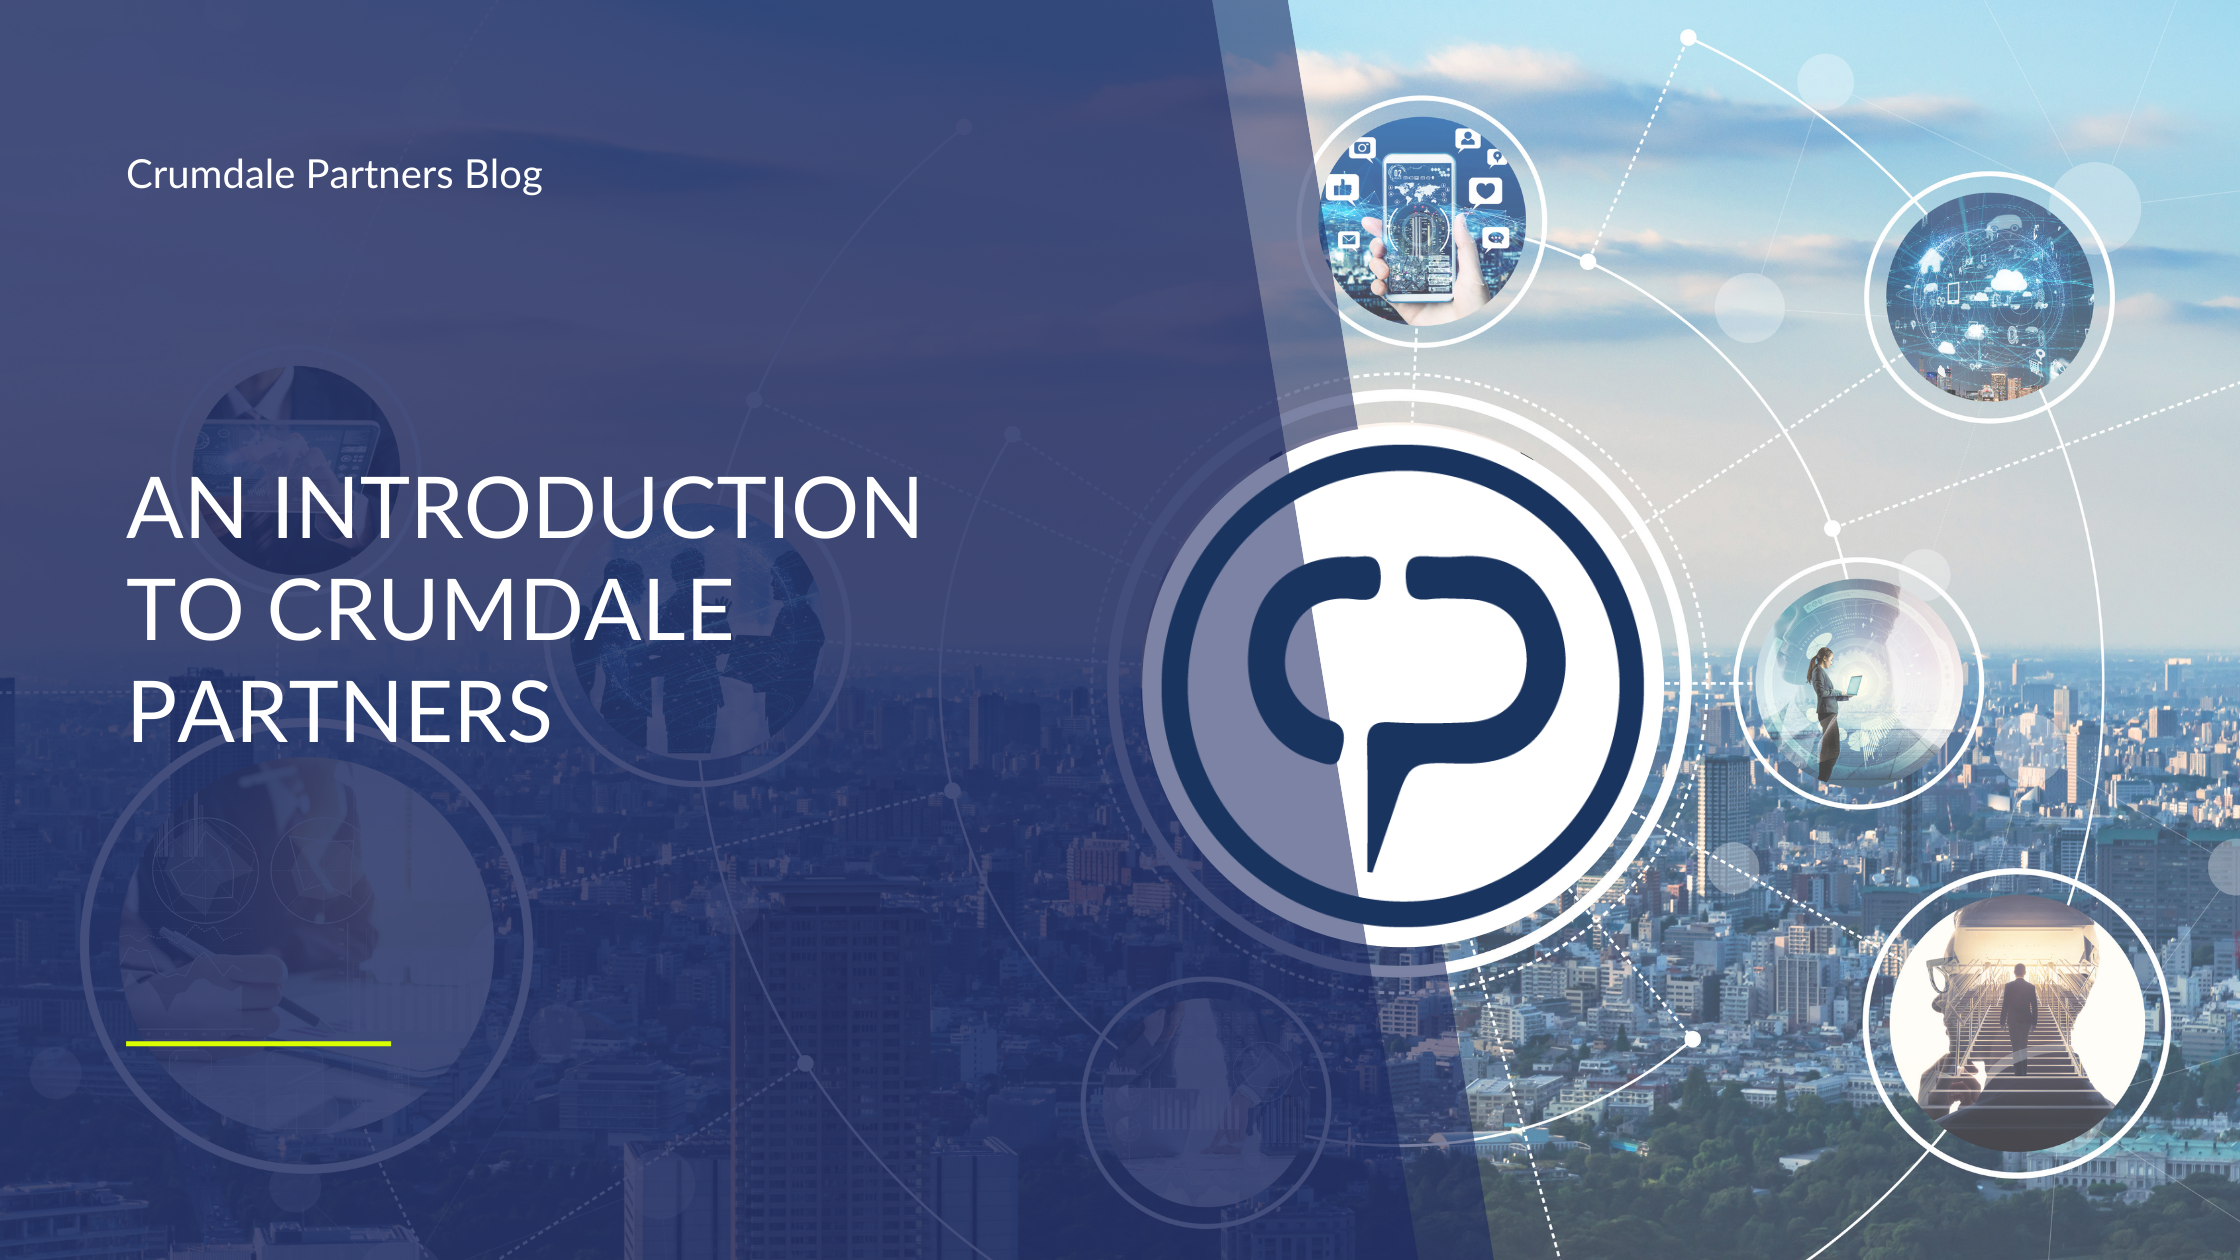 An Introduction to Crumdale Partners